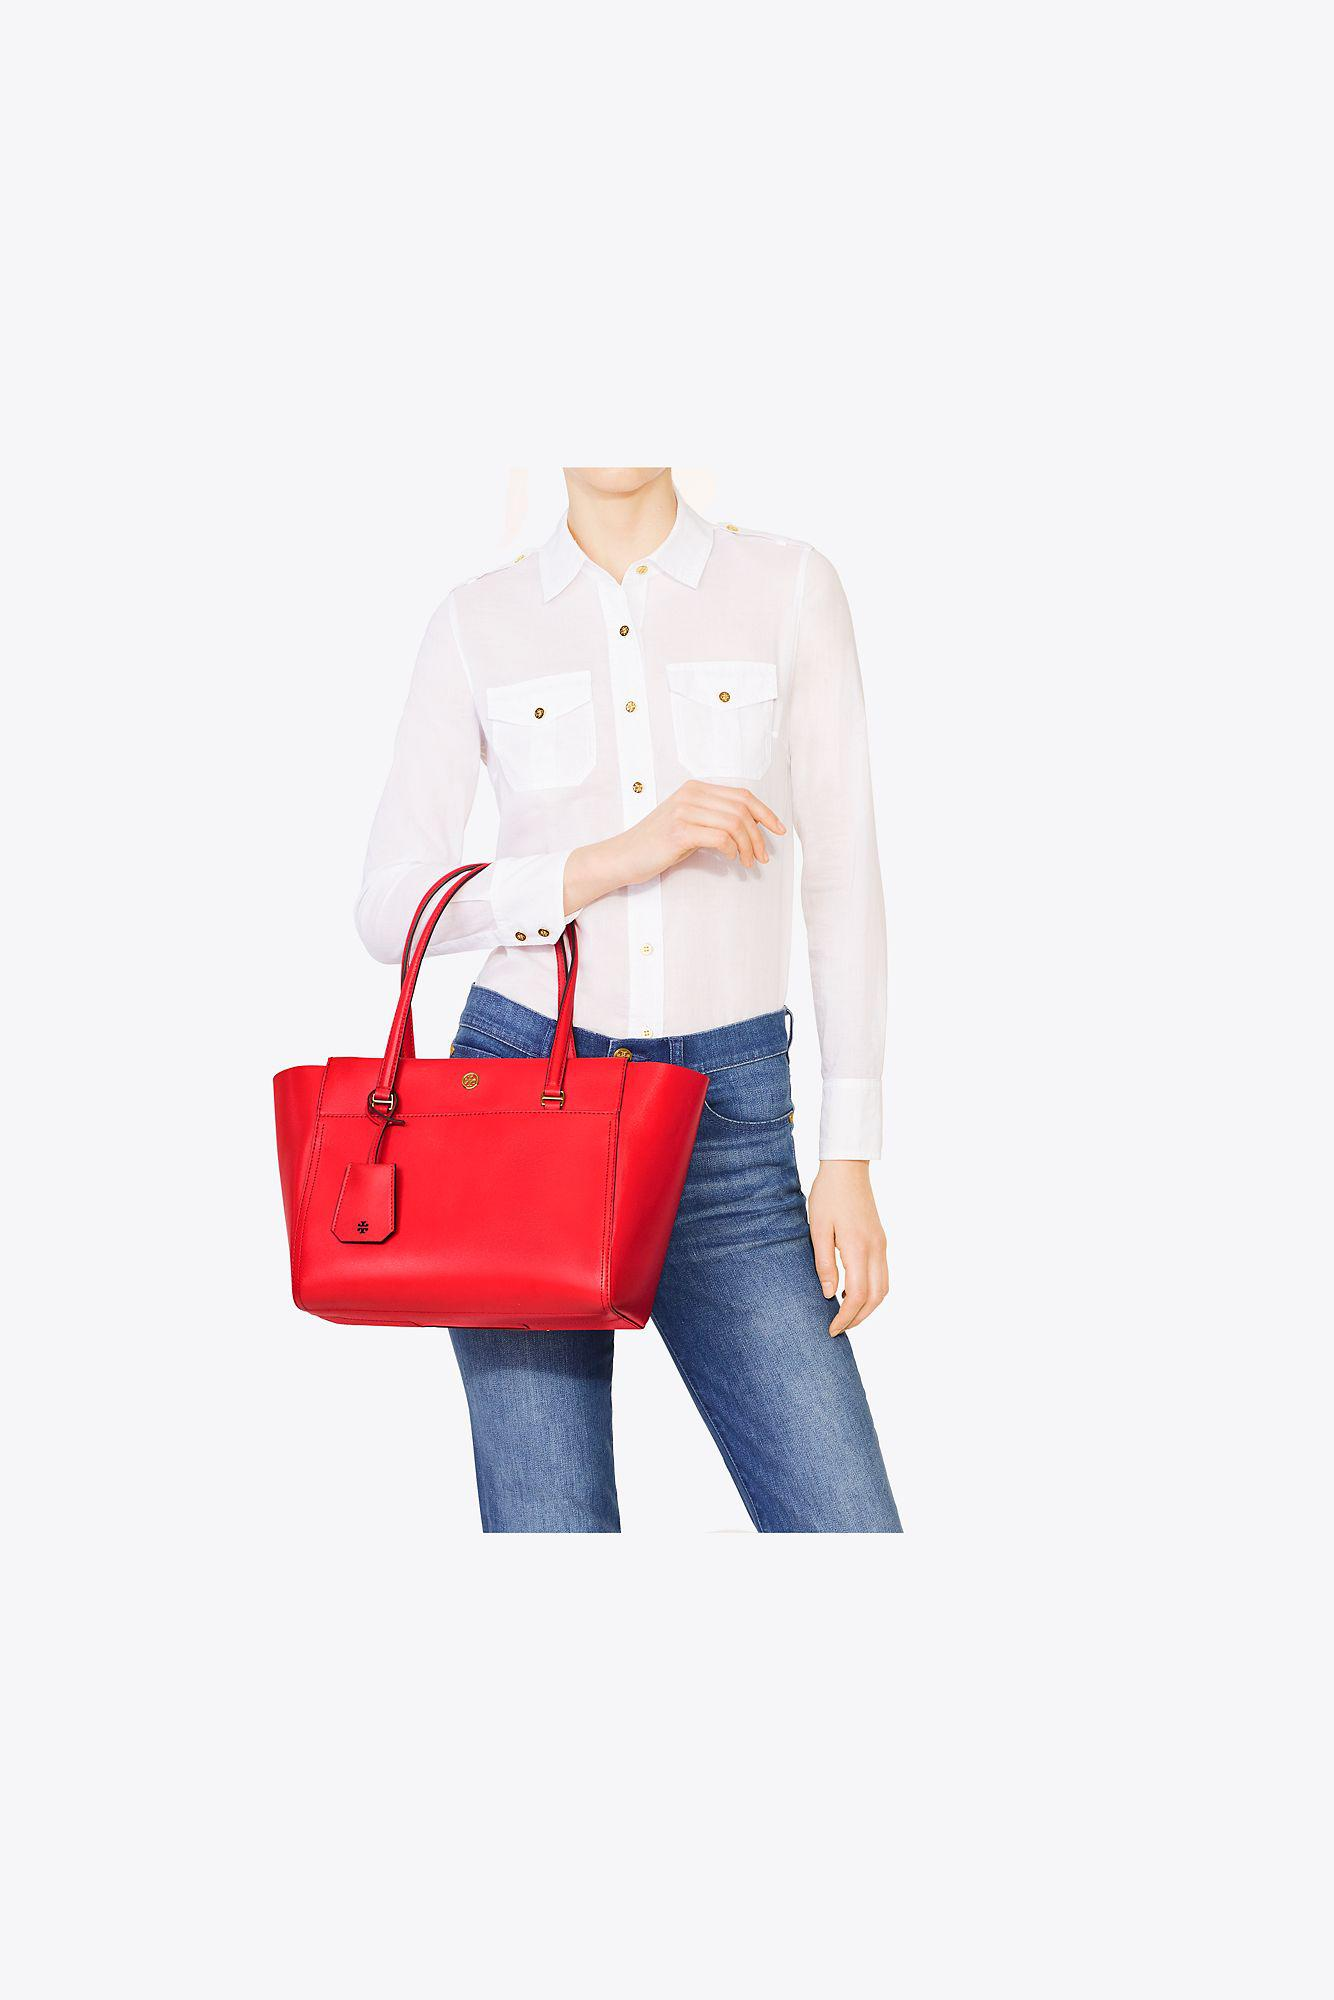 244966bb3a31ab Tory Burch Parker Small Tote in Red - Lyst